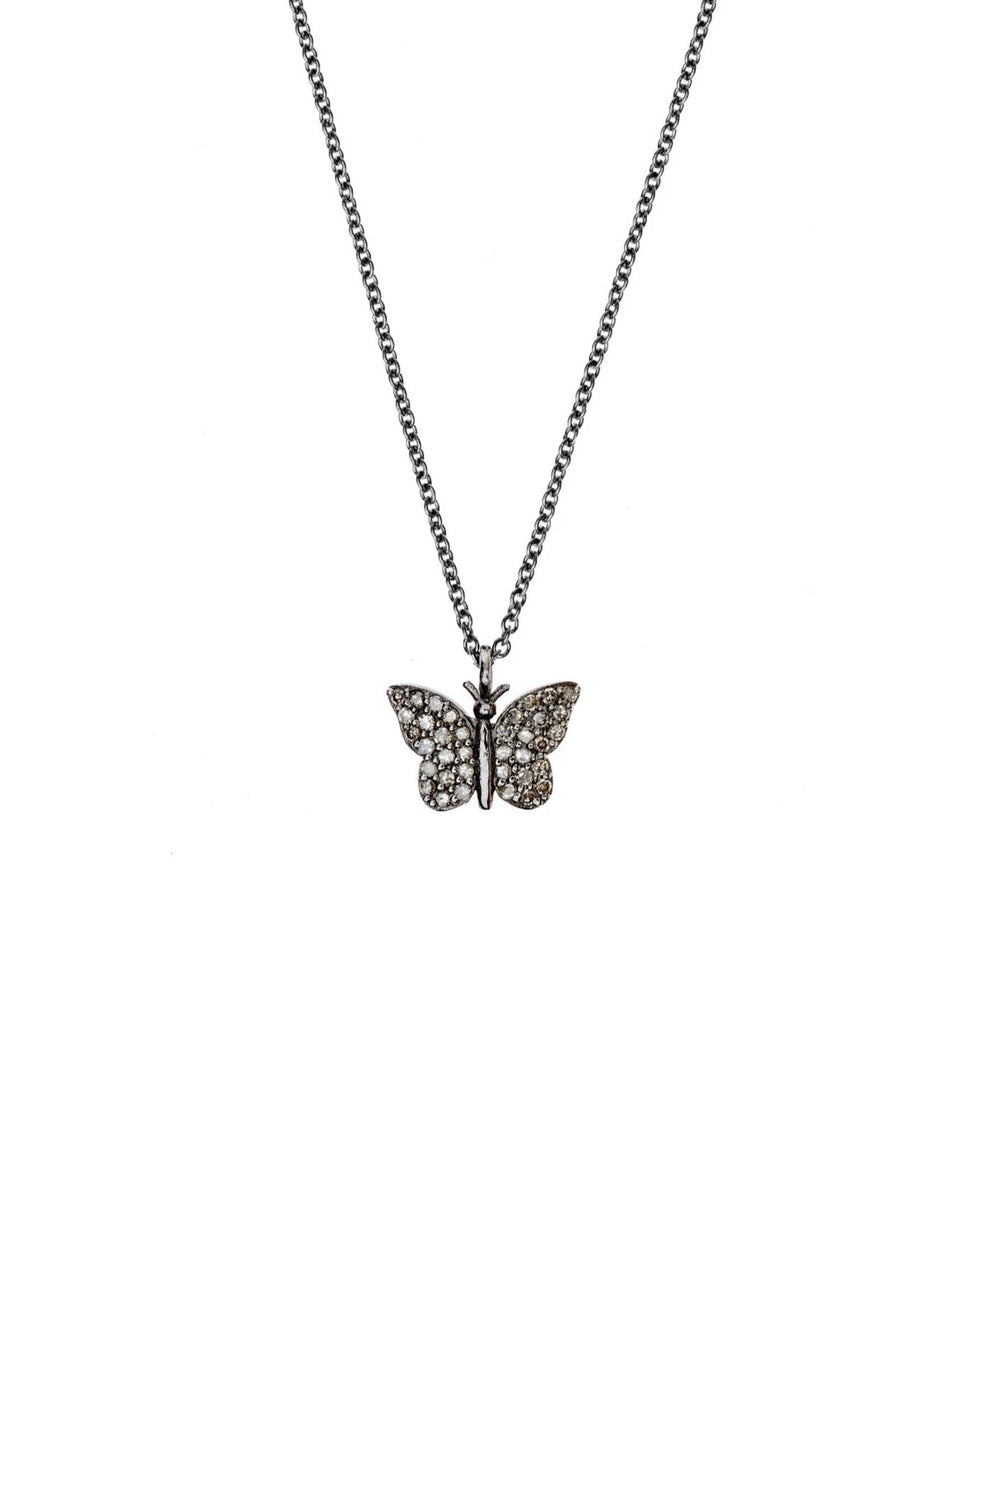 CBYC Butterfly Necklace